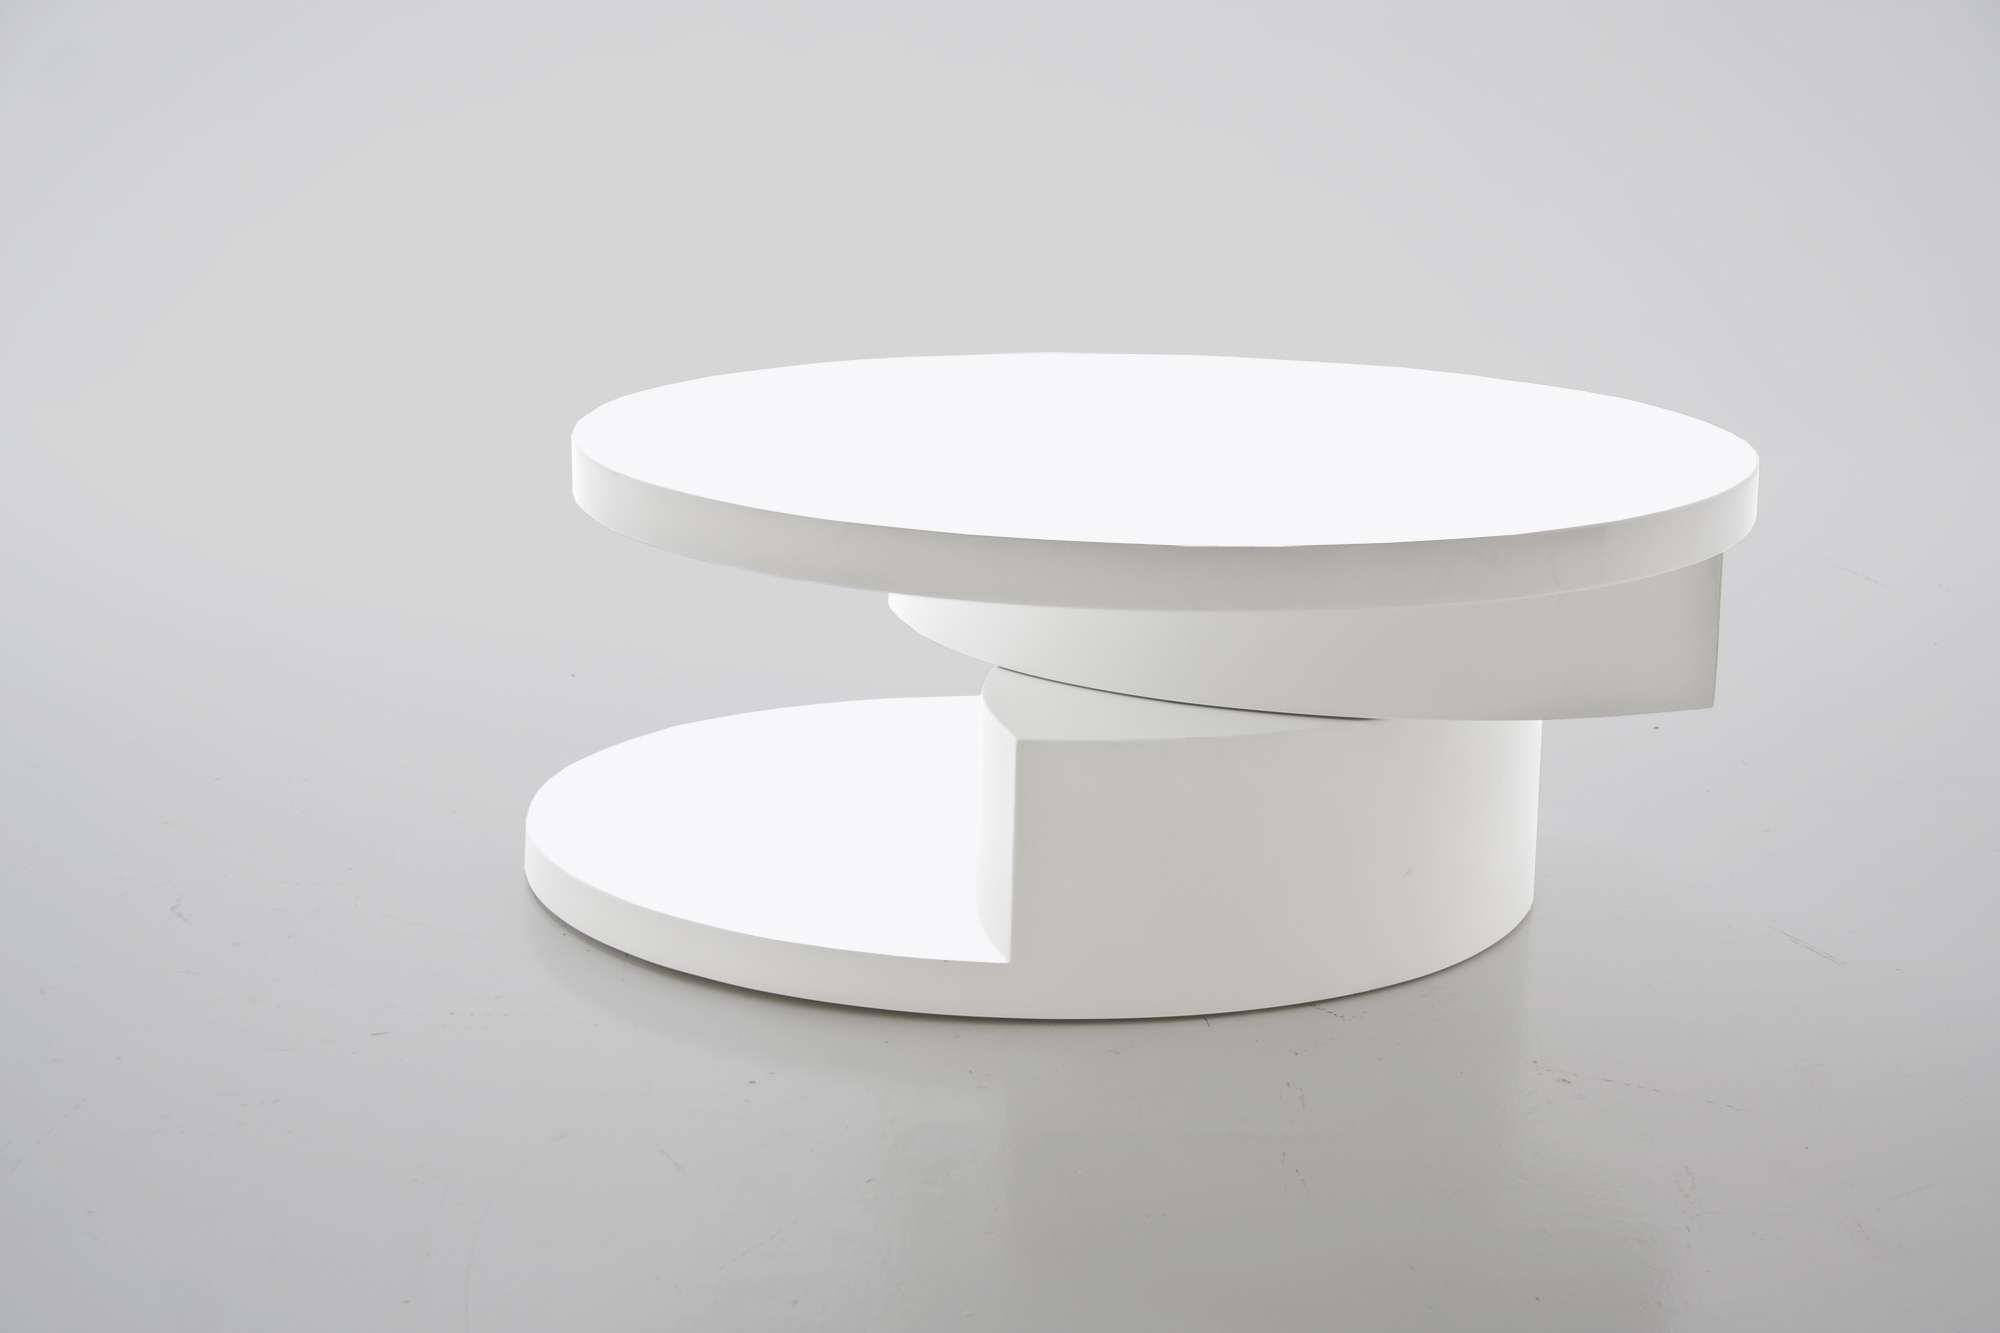 Coffee Tables : White Glass Coffee Table Tofteryd High Gloss Ikea With Regard To 2018 Revolving Glass Coffee Tables (View 7 of 20)